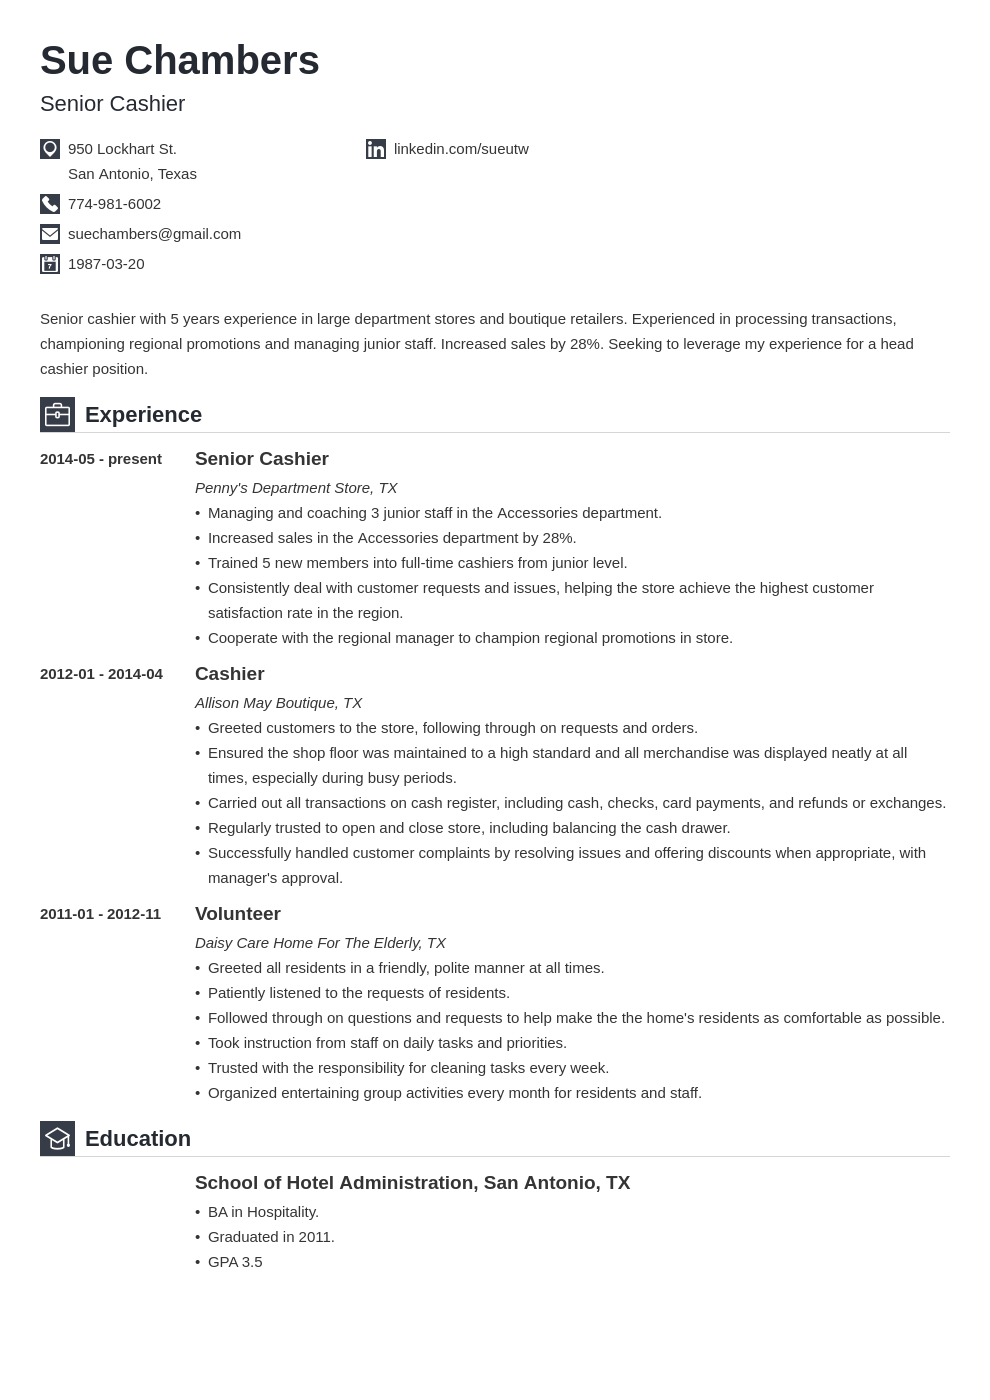 cashier resume template iconic in 2020 Resume examples